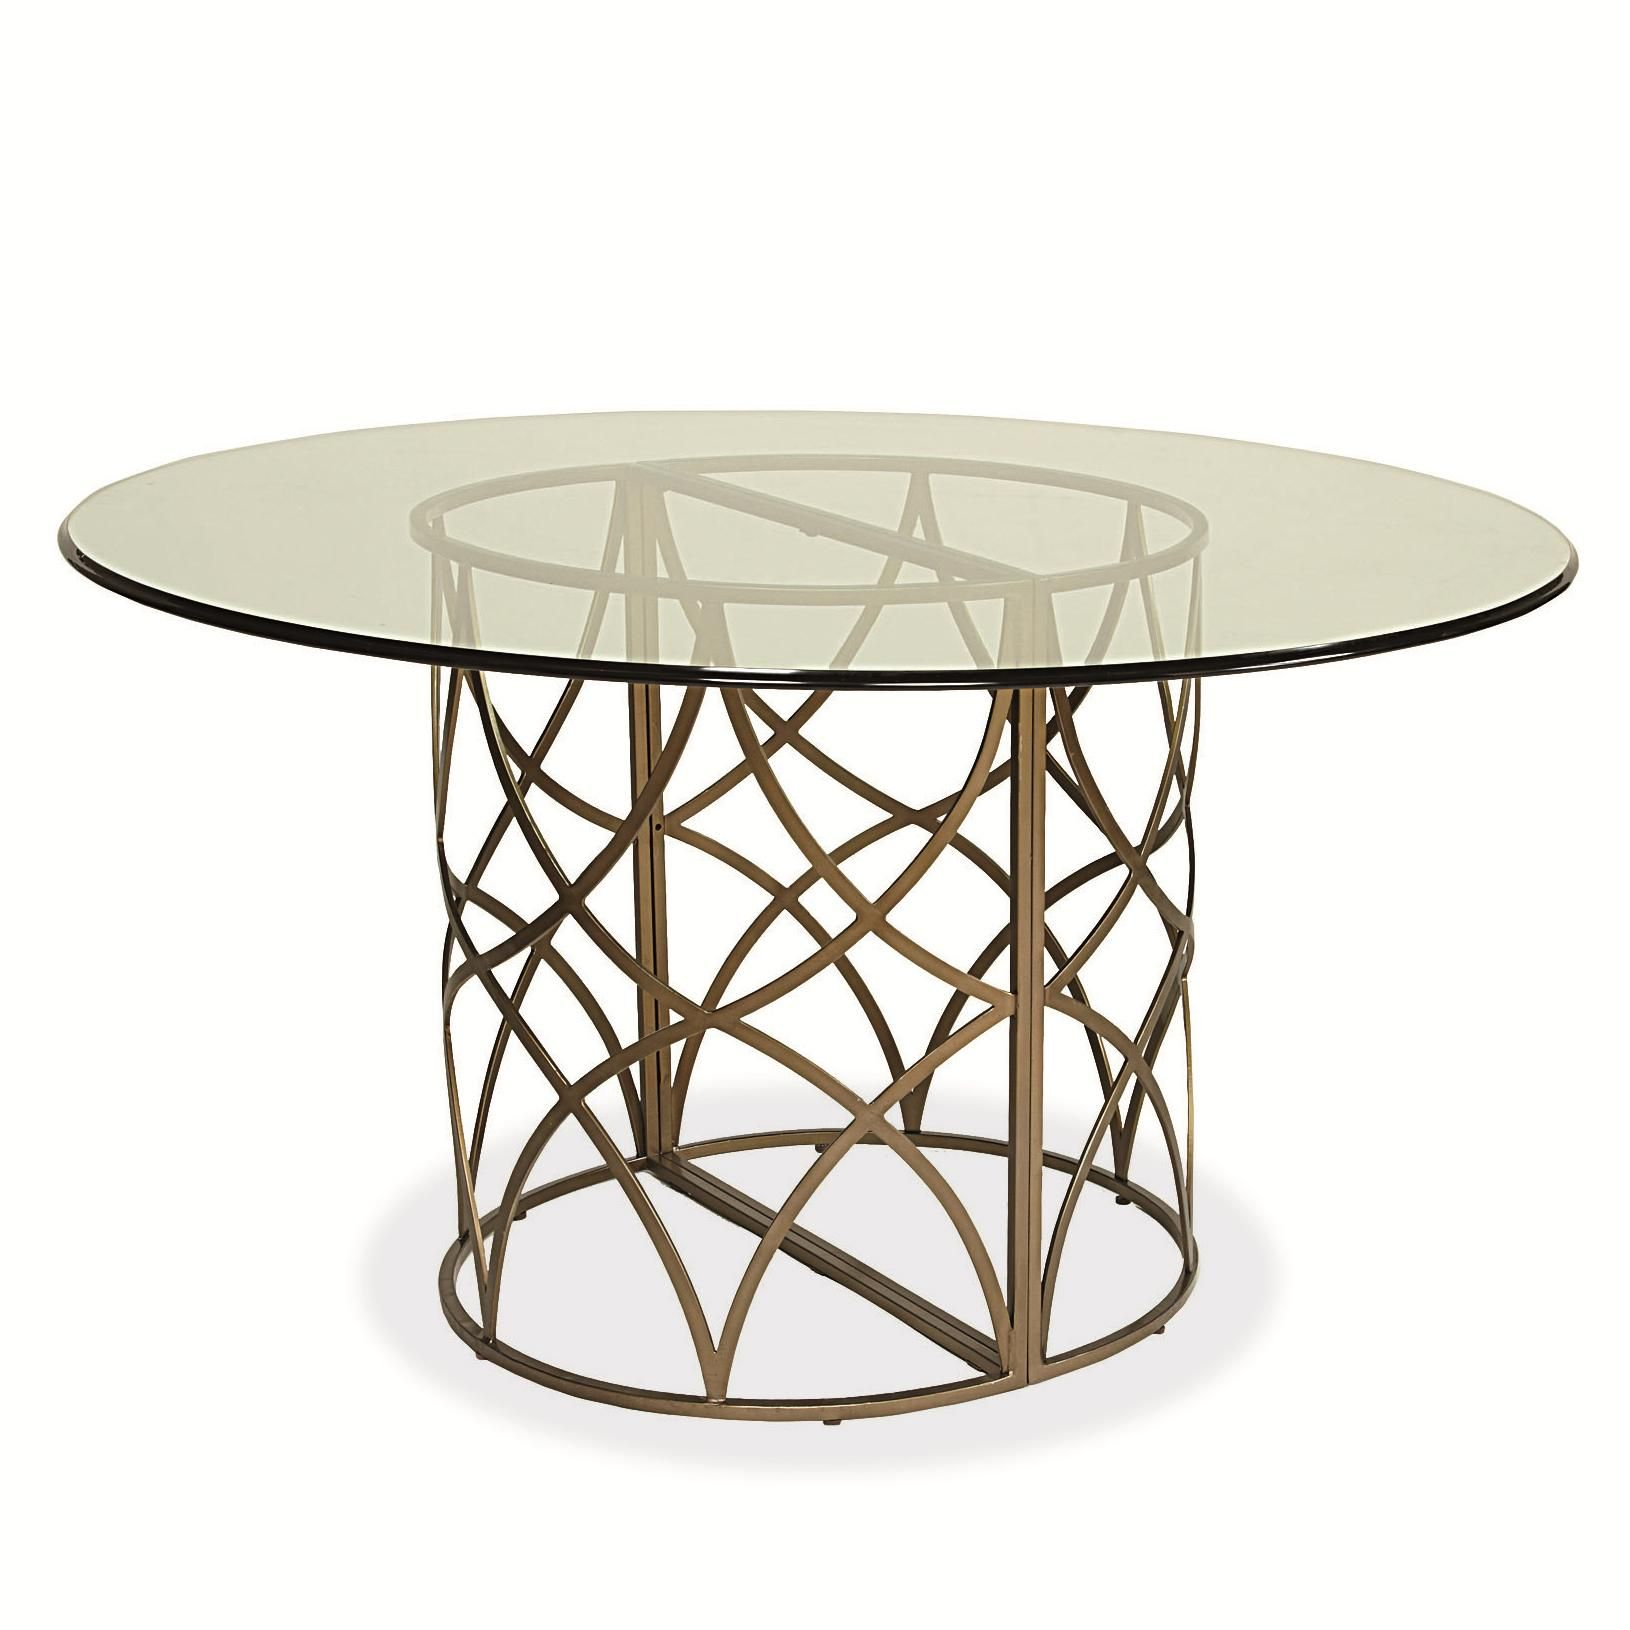 Round glass table top view latitude round glass table by universal  furniture dining rm